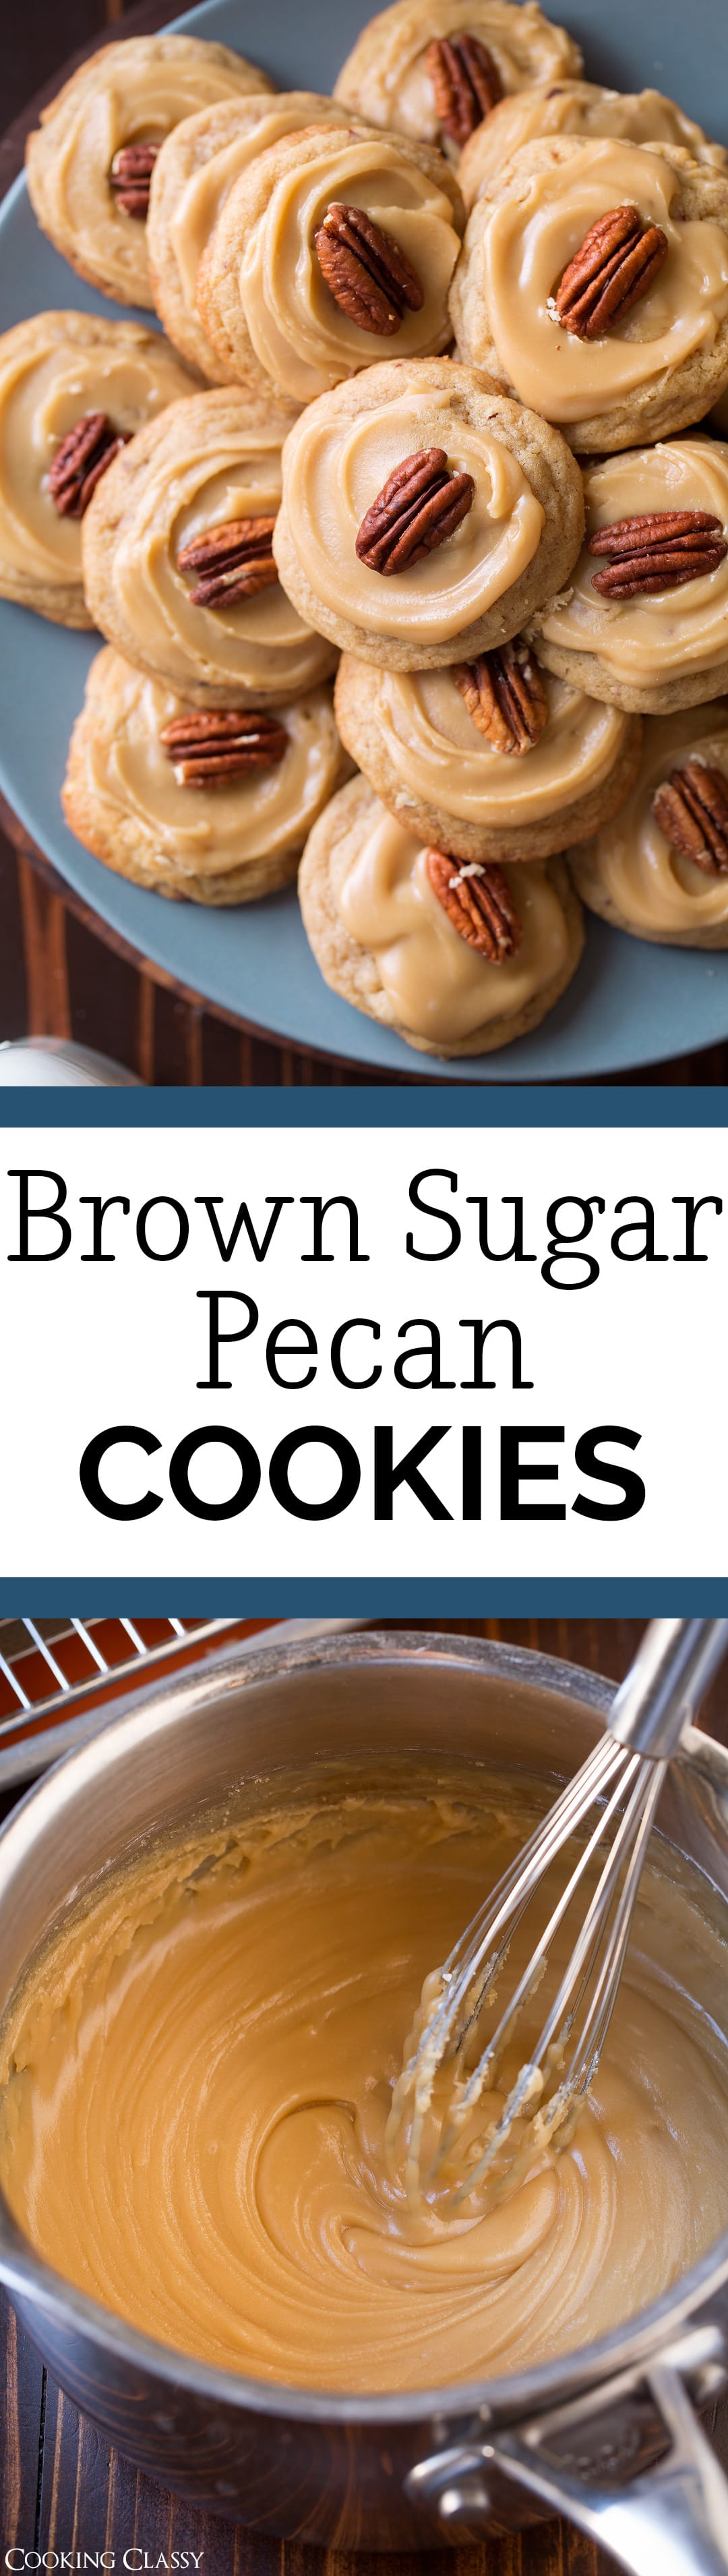 Brown Sugar Pecan Cookies - A chewy cookie brimming with toasted pecans and covered with a caramel or penuche-like frosting. Such a delicious holiday cookie! #christmascookies #dessert #recipe #christmas #pecancookies